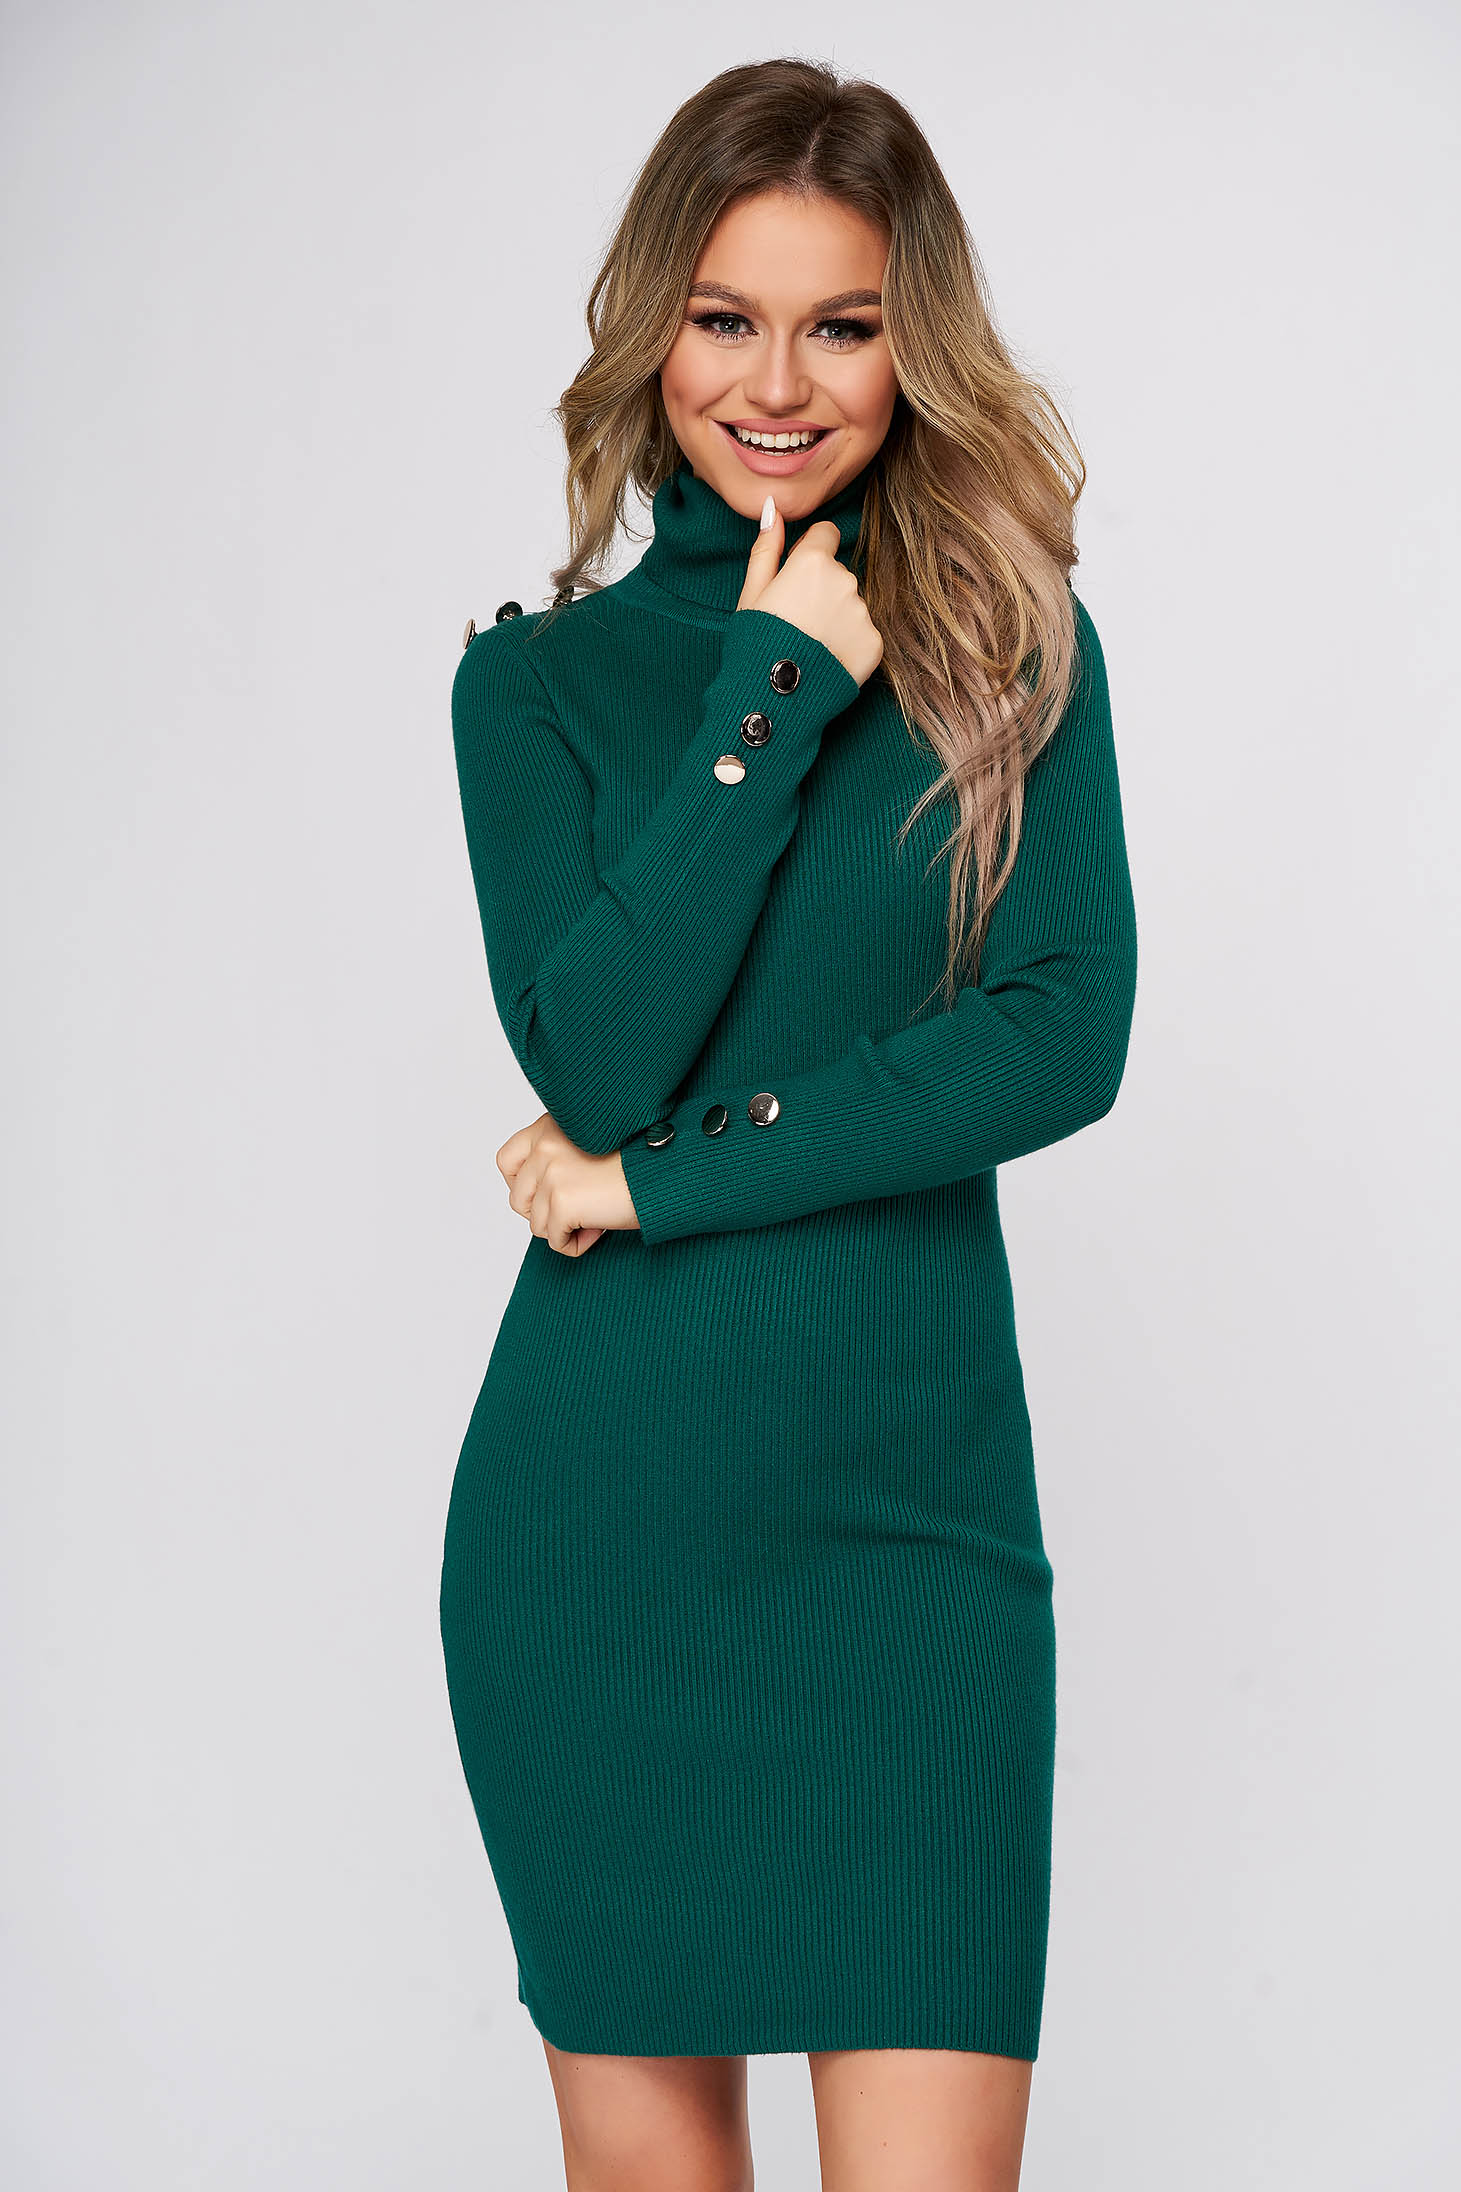 Green dress short cut daily with turtle neck from striped fabric pencil